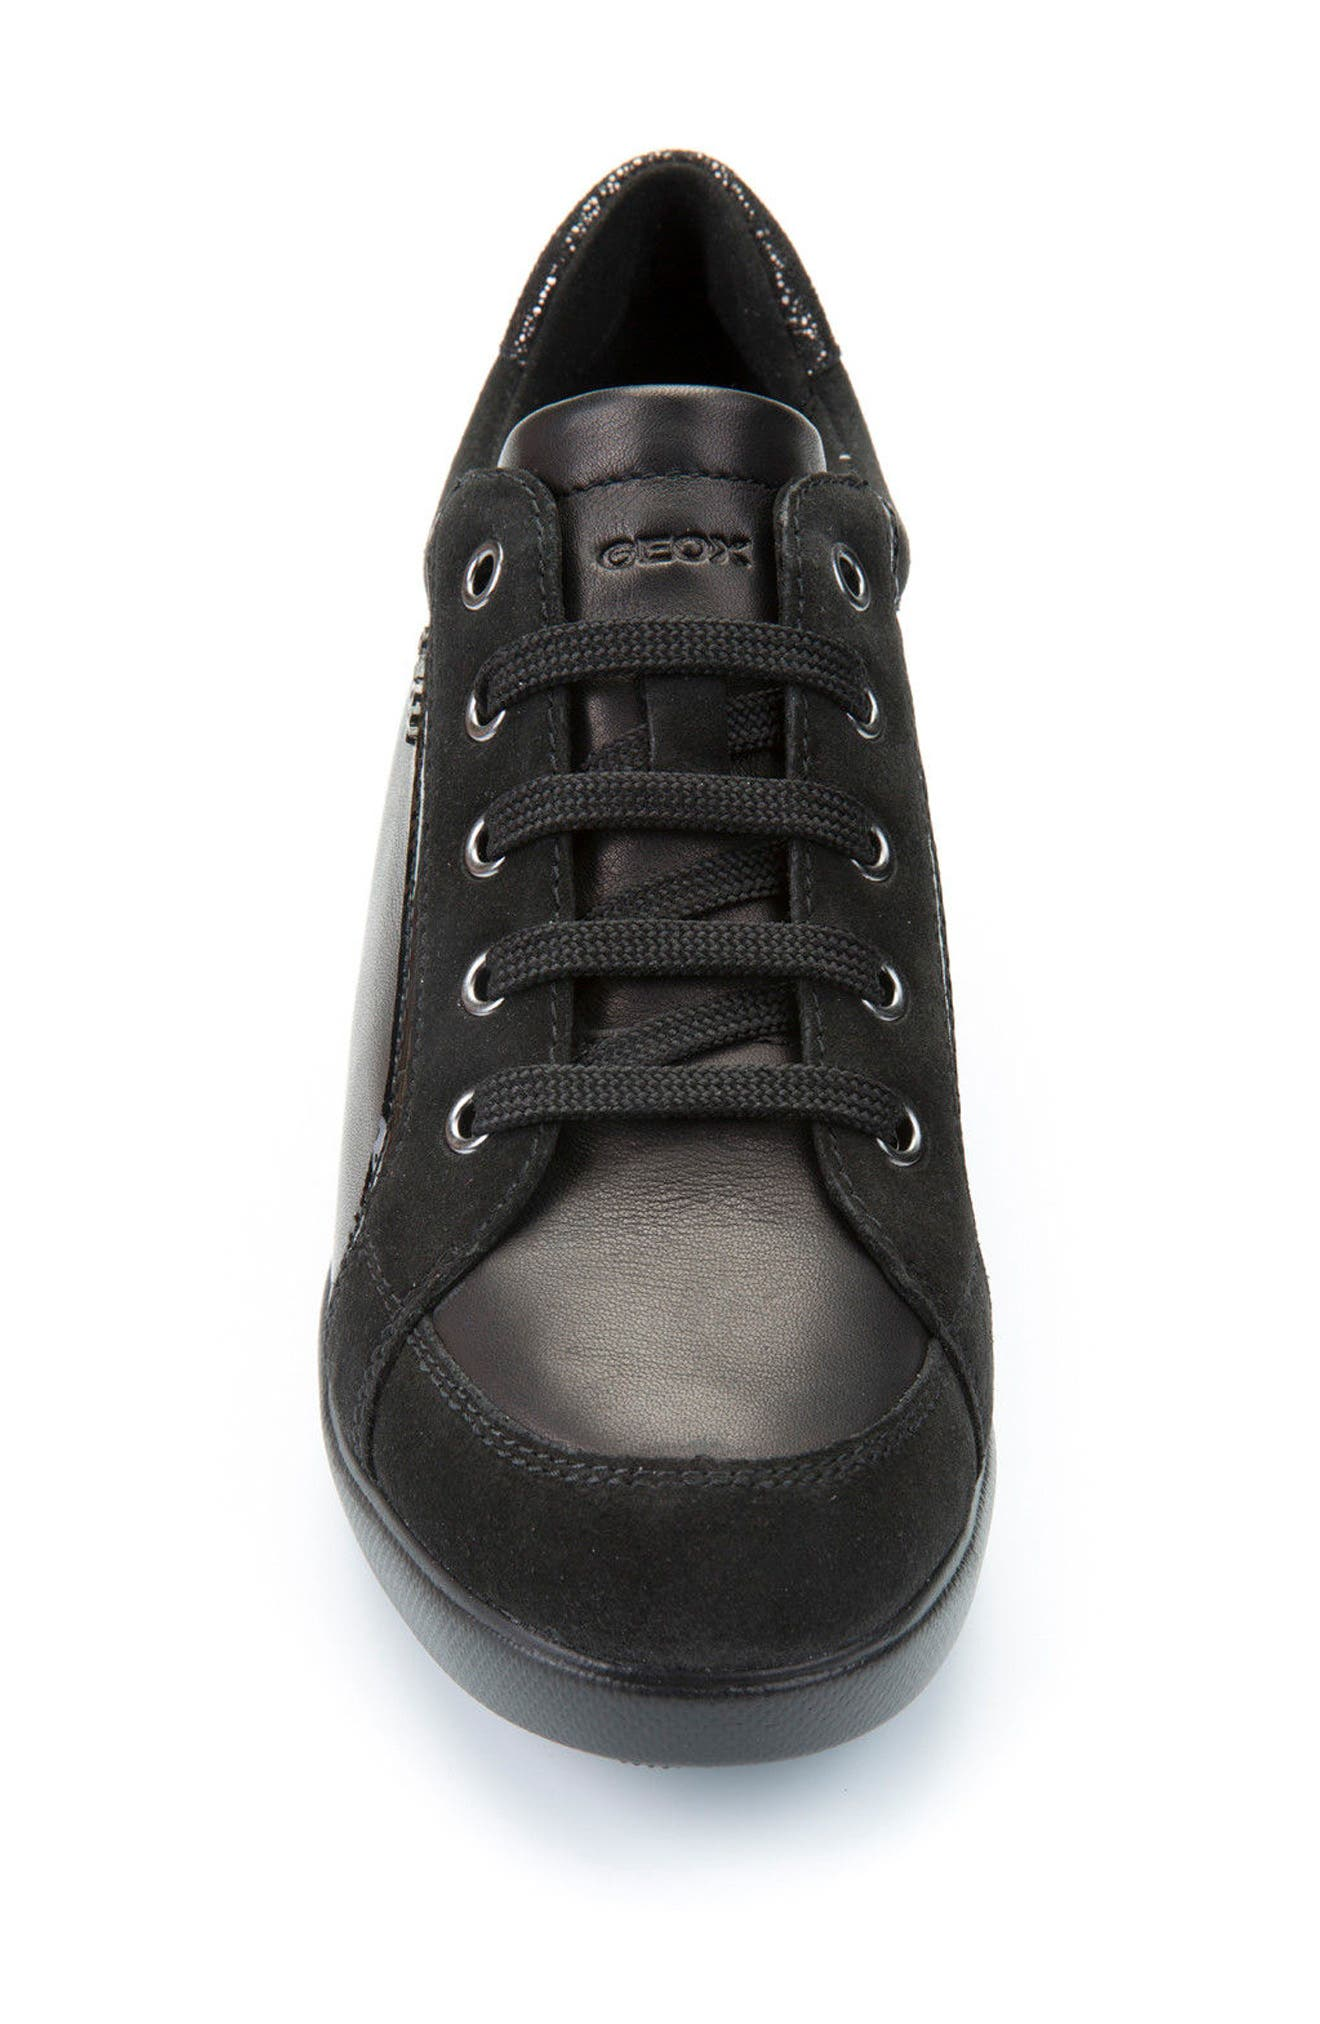 Stardust Wedge Sneaker,                             Alternate thumbnail 4, color,                             Black Leather